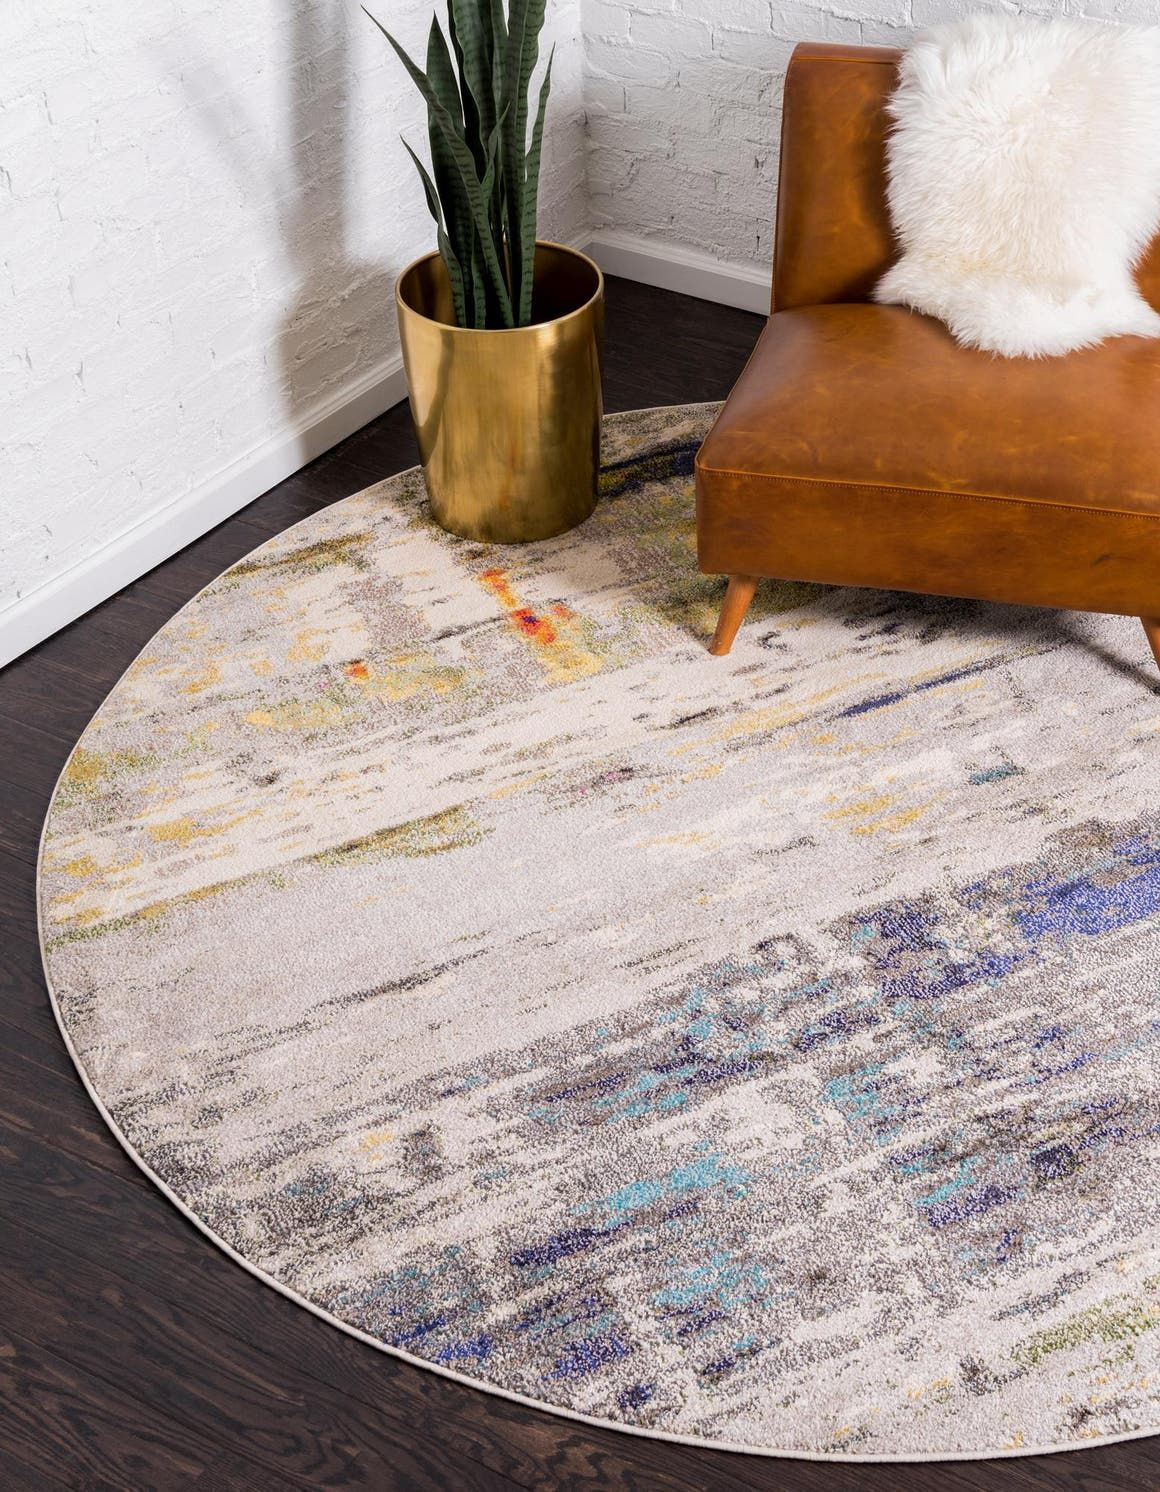 Theia Gray 8 Ft Round Area Rug In 2020 Rugs Round Area Rugs Round Rugs